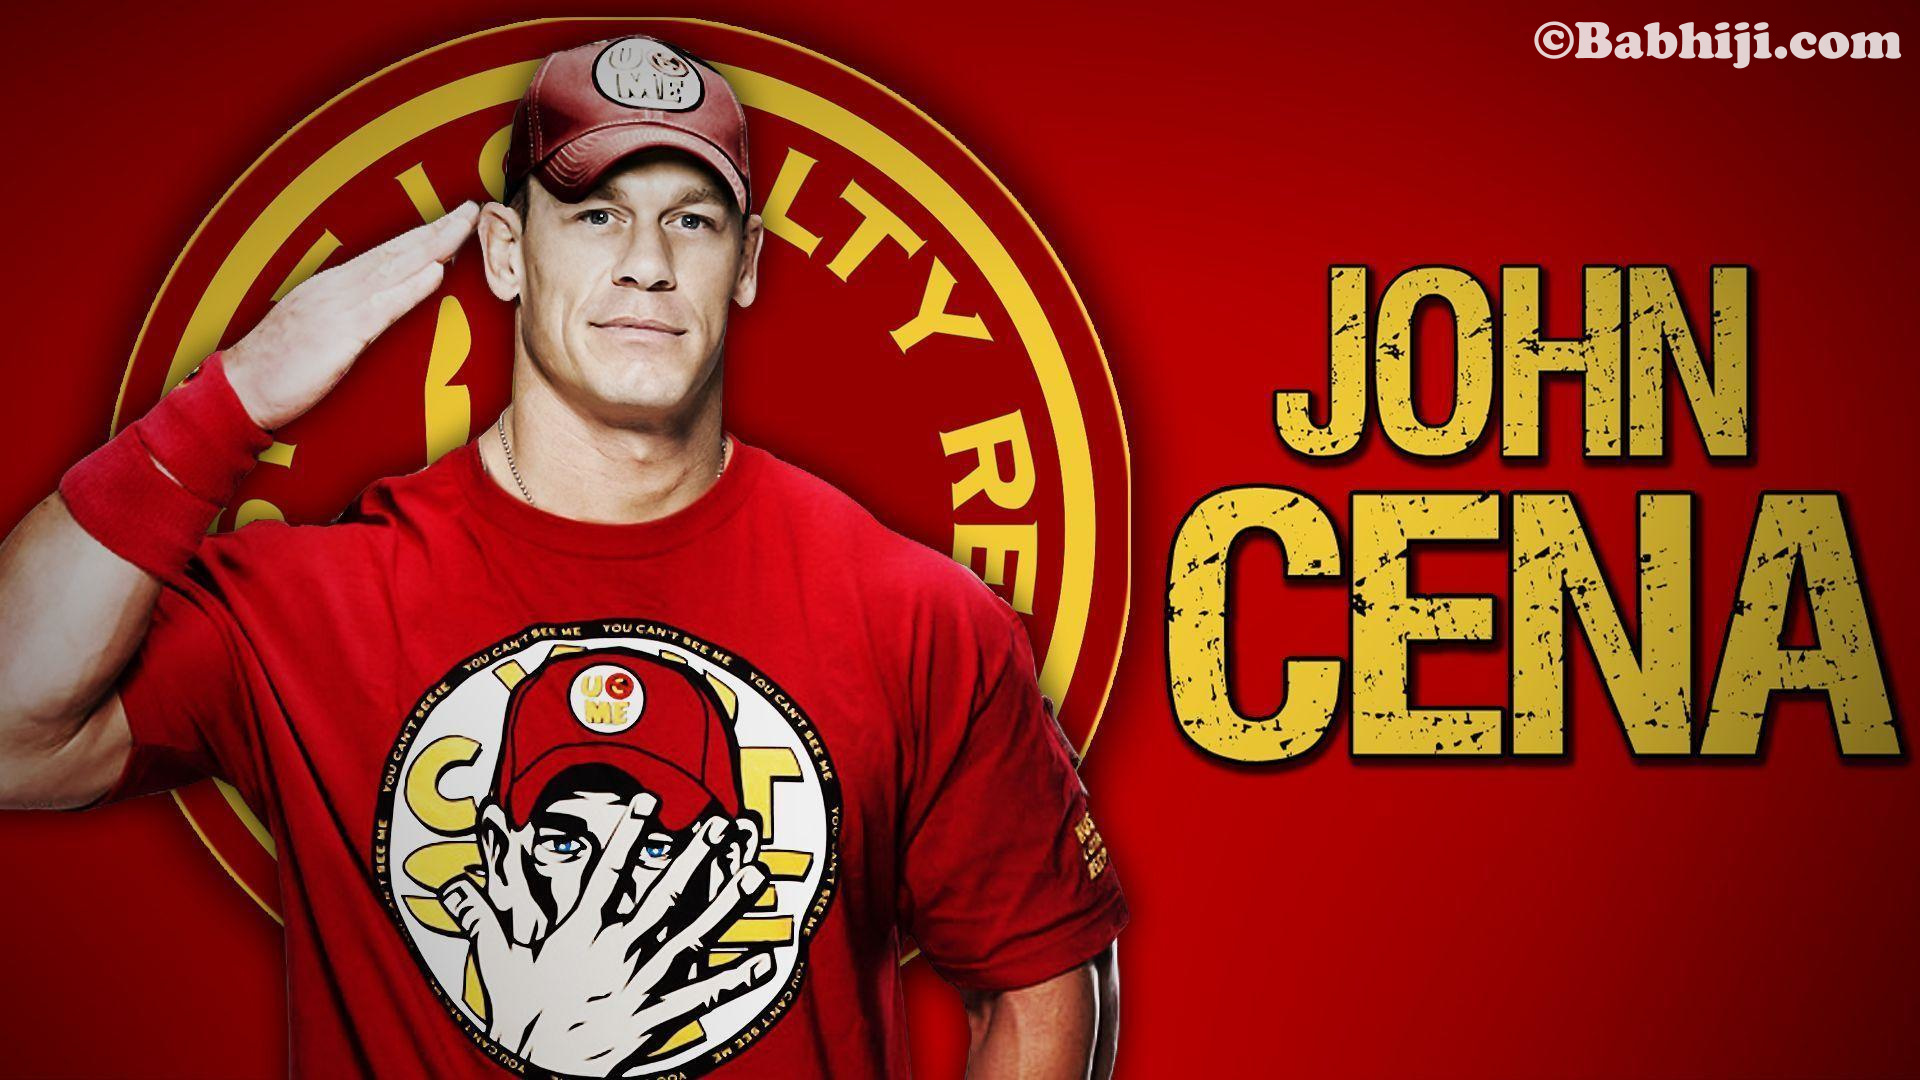 John Cena, John Cena Wallpaper, John Cena Photo, John Cena Images